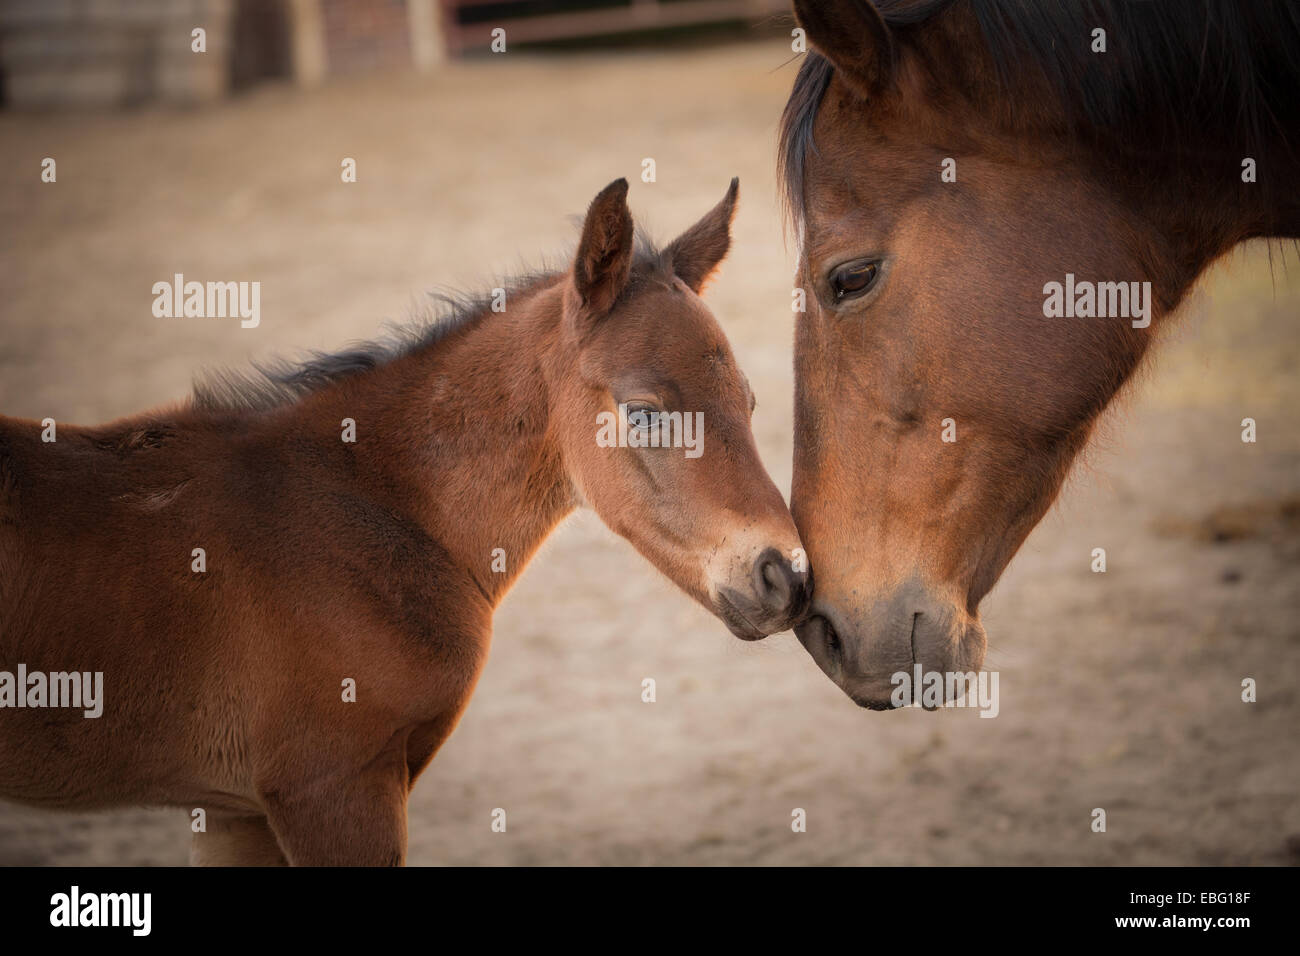 Foal and mother horse touching noses. Iowa State University horse barn. - Stock Image